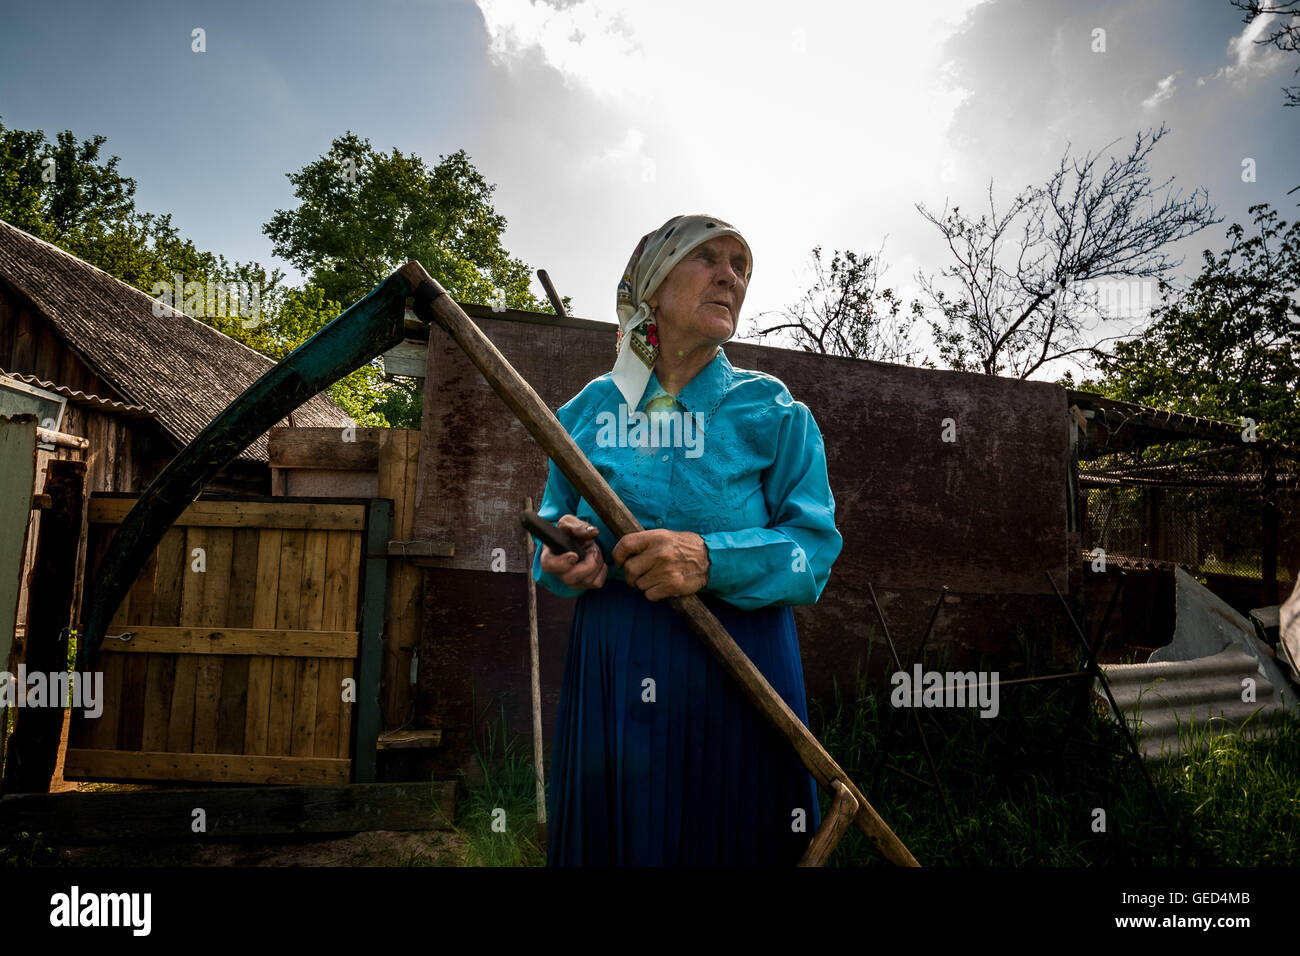 Hanna Zavorotnya is one of the residents who returned to her home in the radioactive zone shortly after the Chernobyl - Stock Image